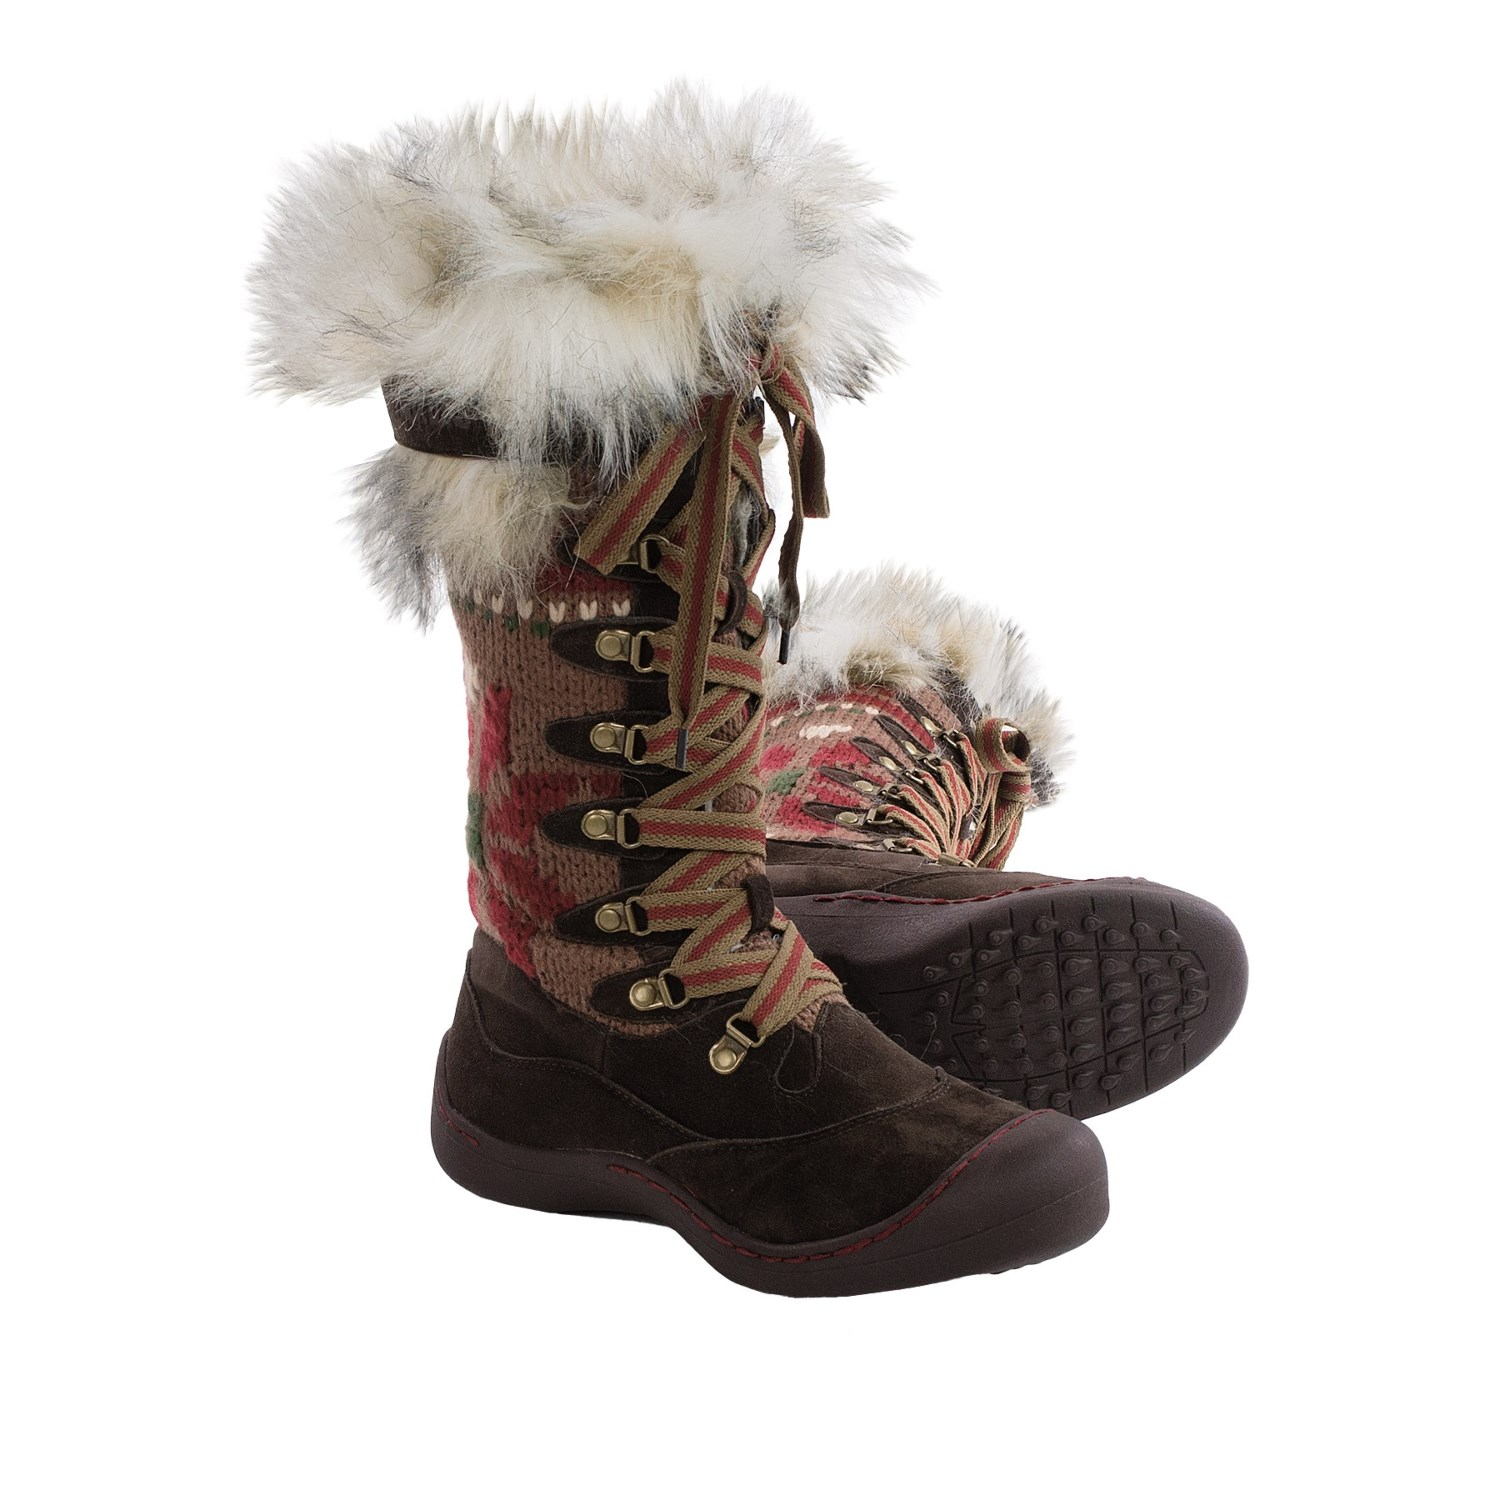 Womens Tall Insulated Snow Boots | Homewood Mountain Ski Resort